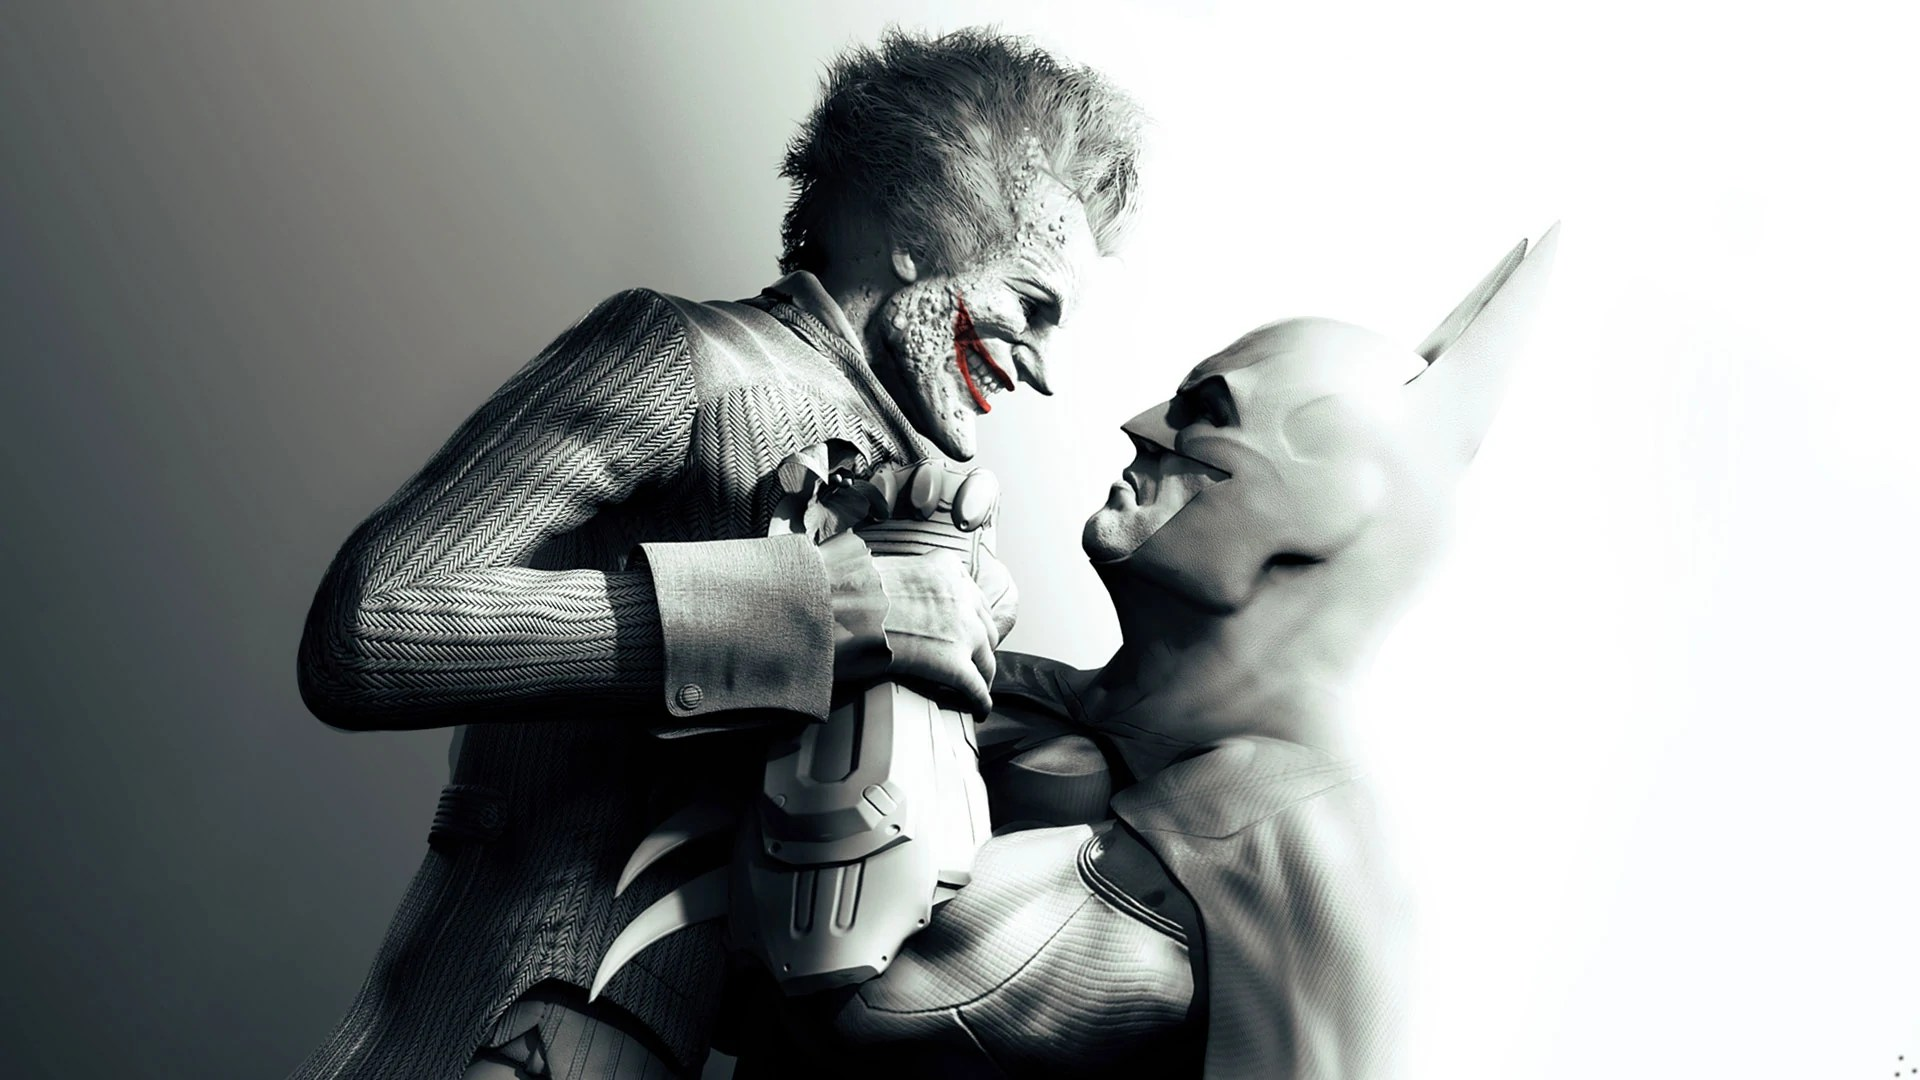 Batman Arkham Robin Wallpaper Image Batman vs jokerAC render jpg Batman Wiki x